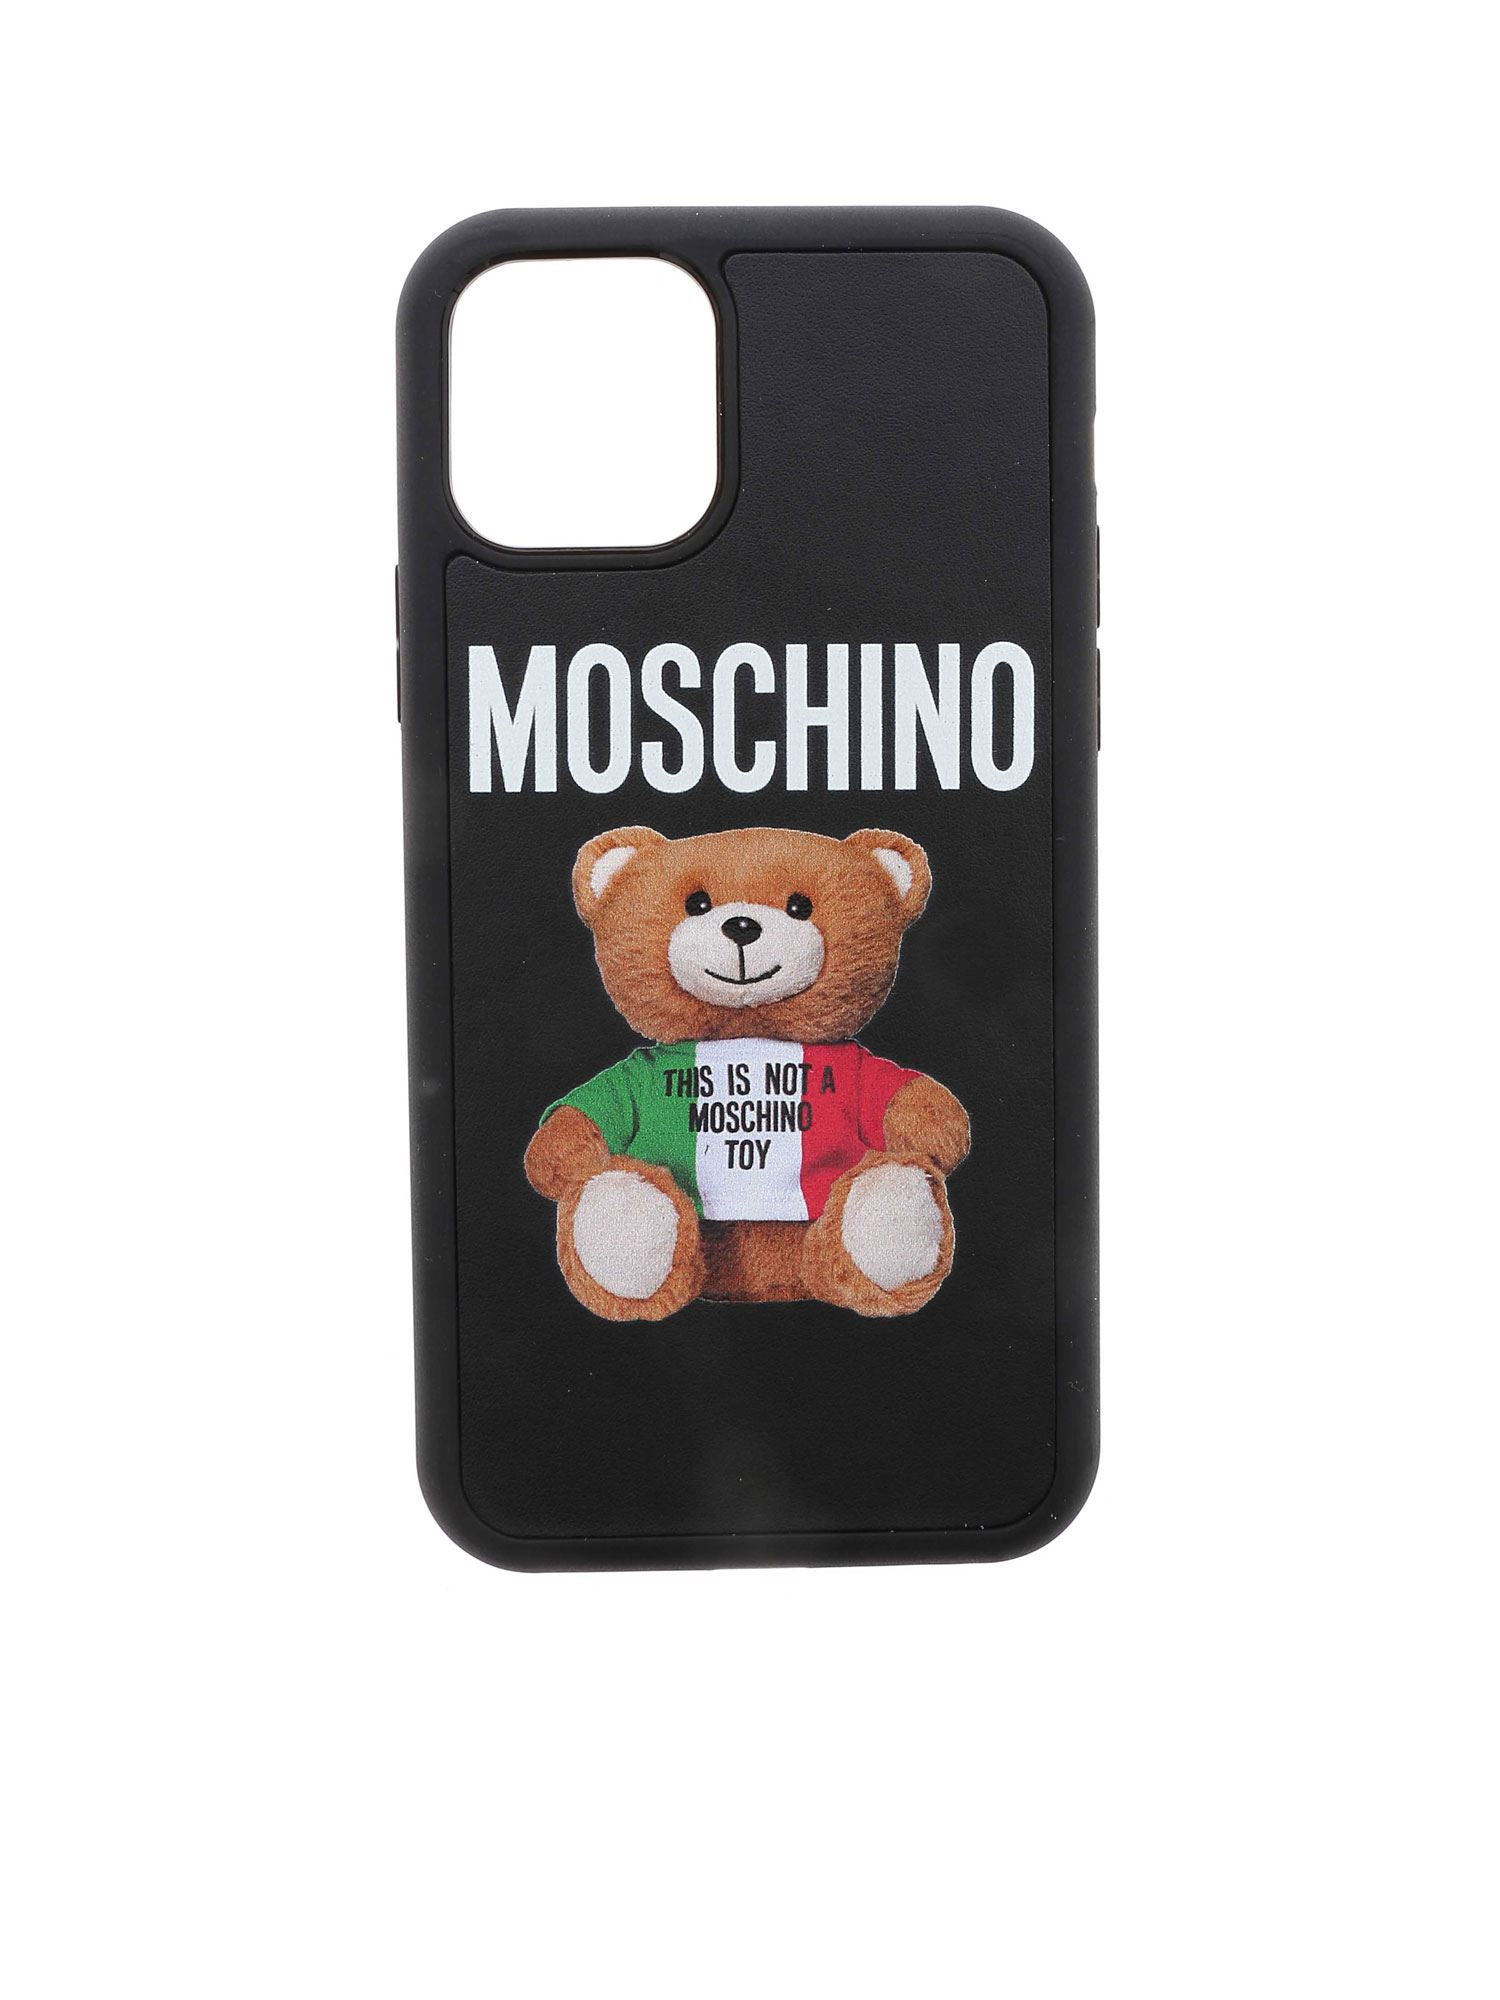 Moschino ITALIAN TEDDY BEAR 11 PRO IPHONE COVER IN WHITE